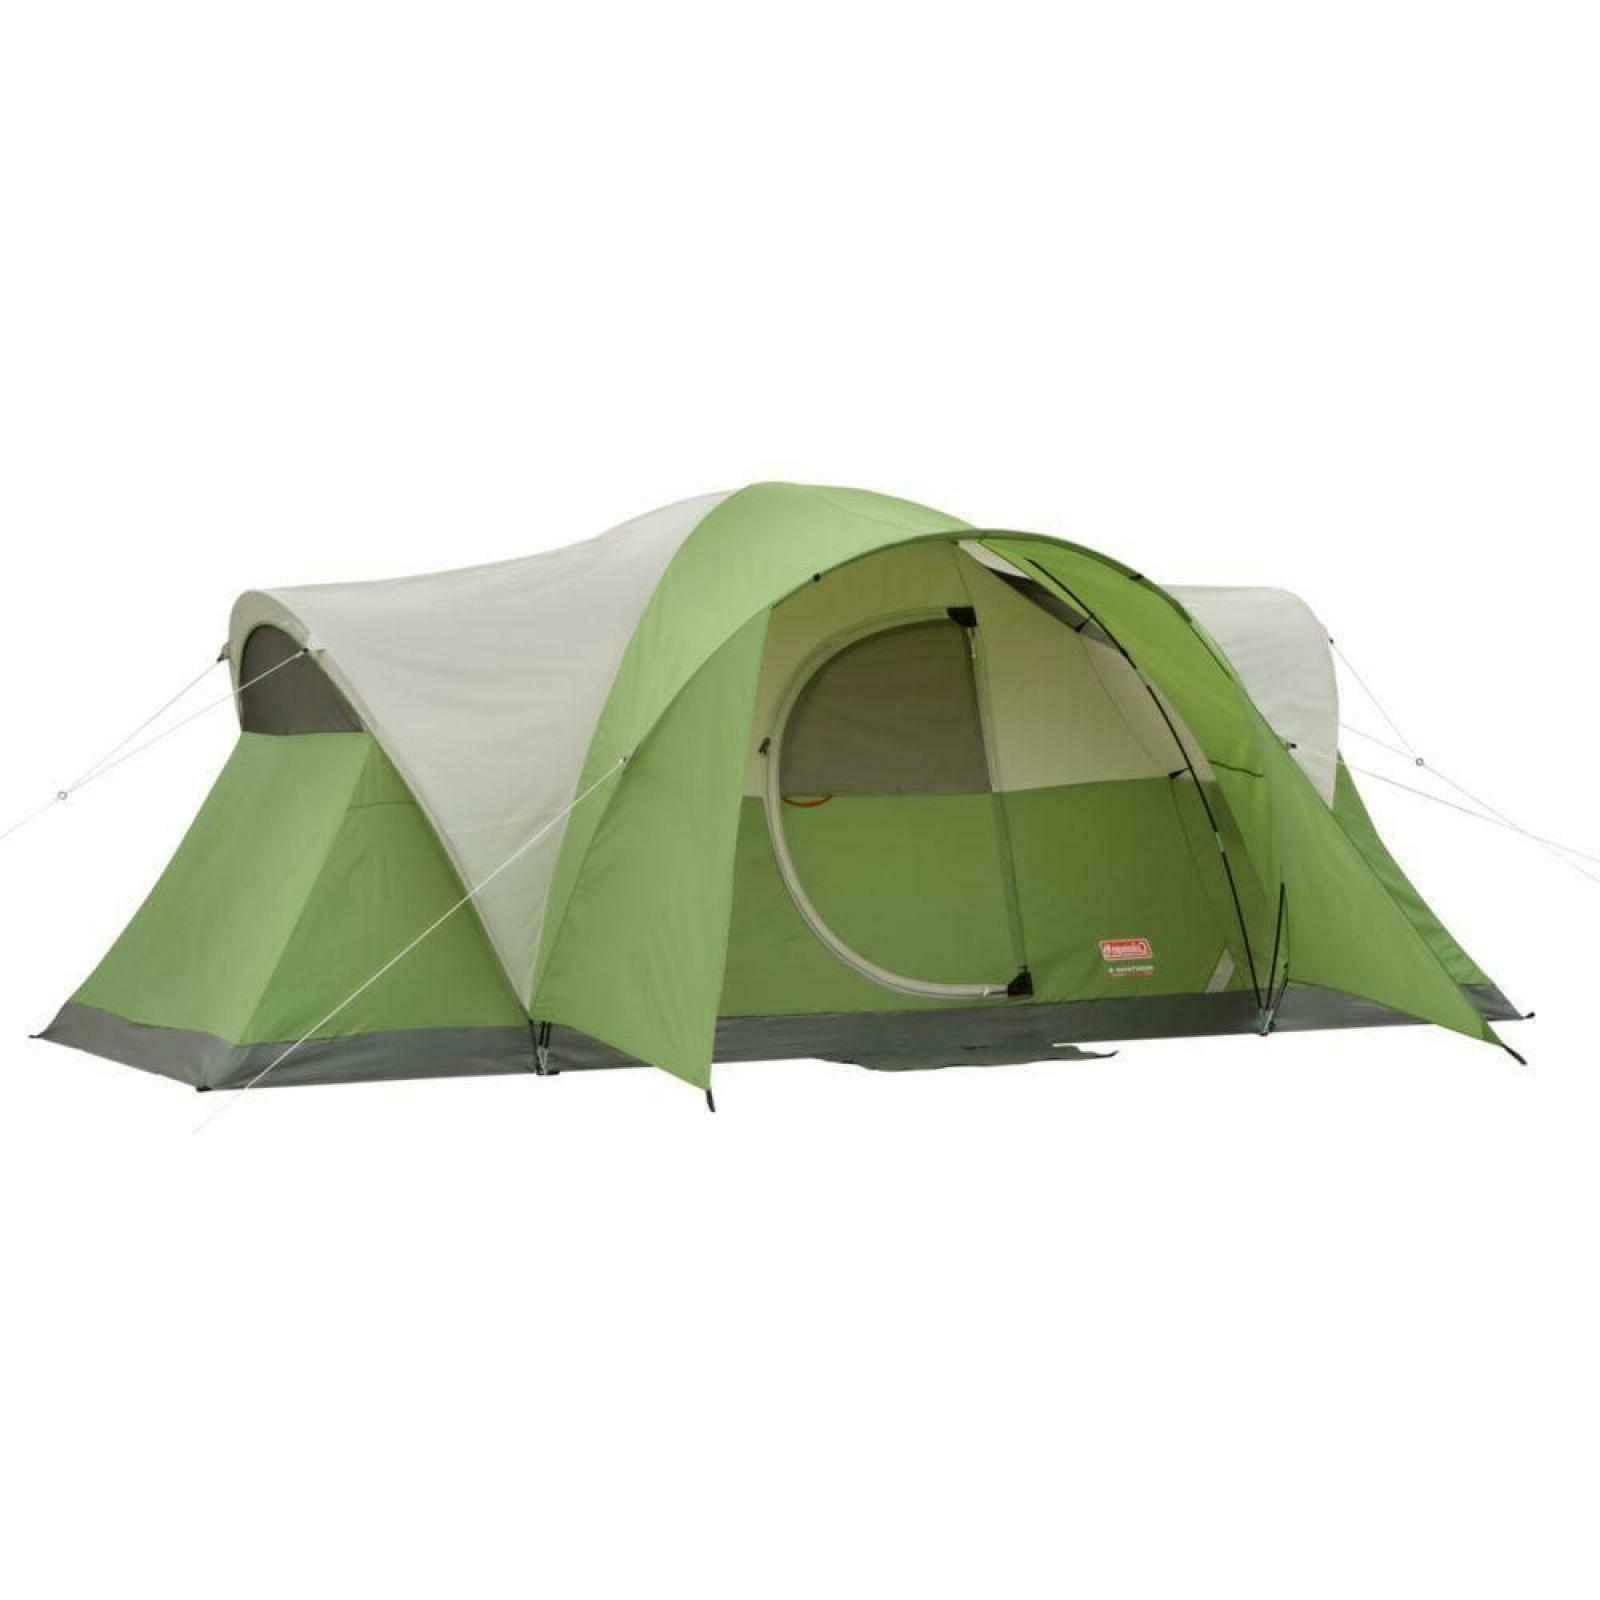 Modified Dome Tent 8-Person Modified Wt Hinged Door Hiking/C